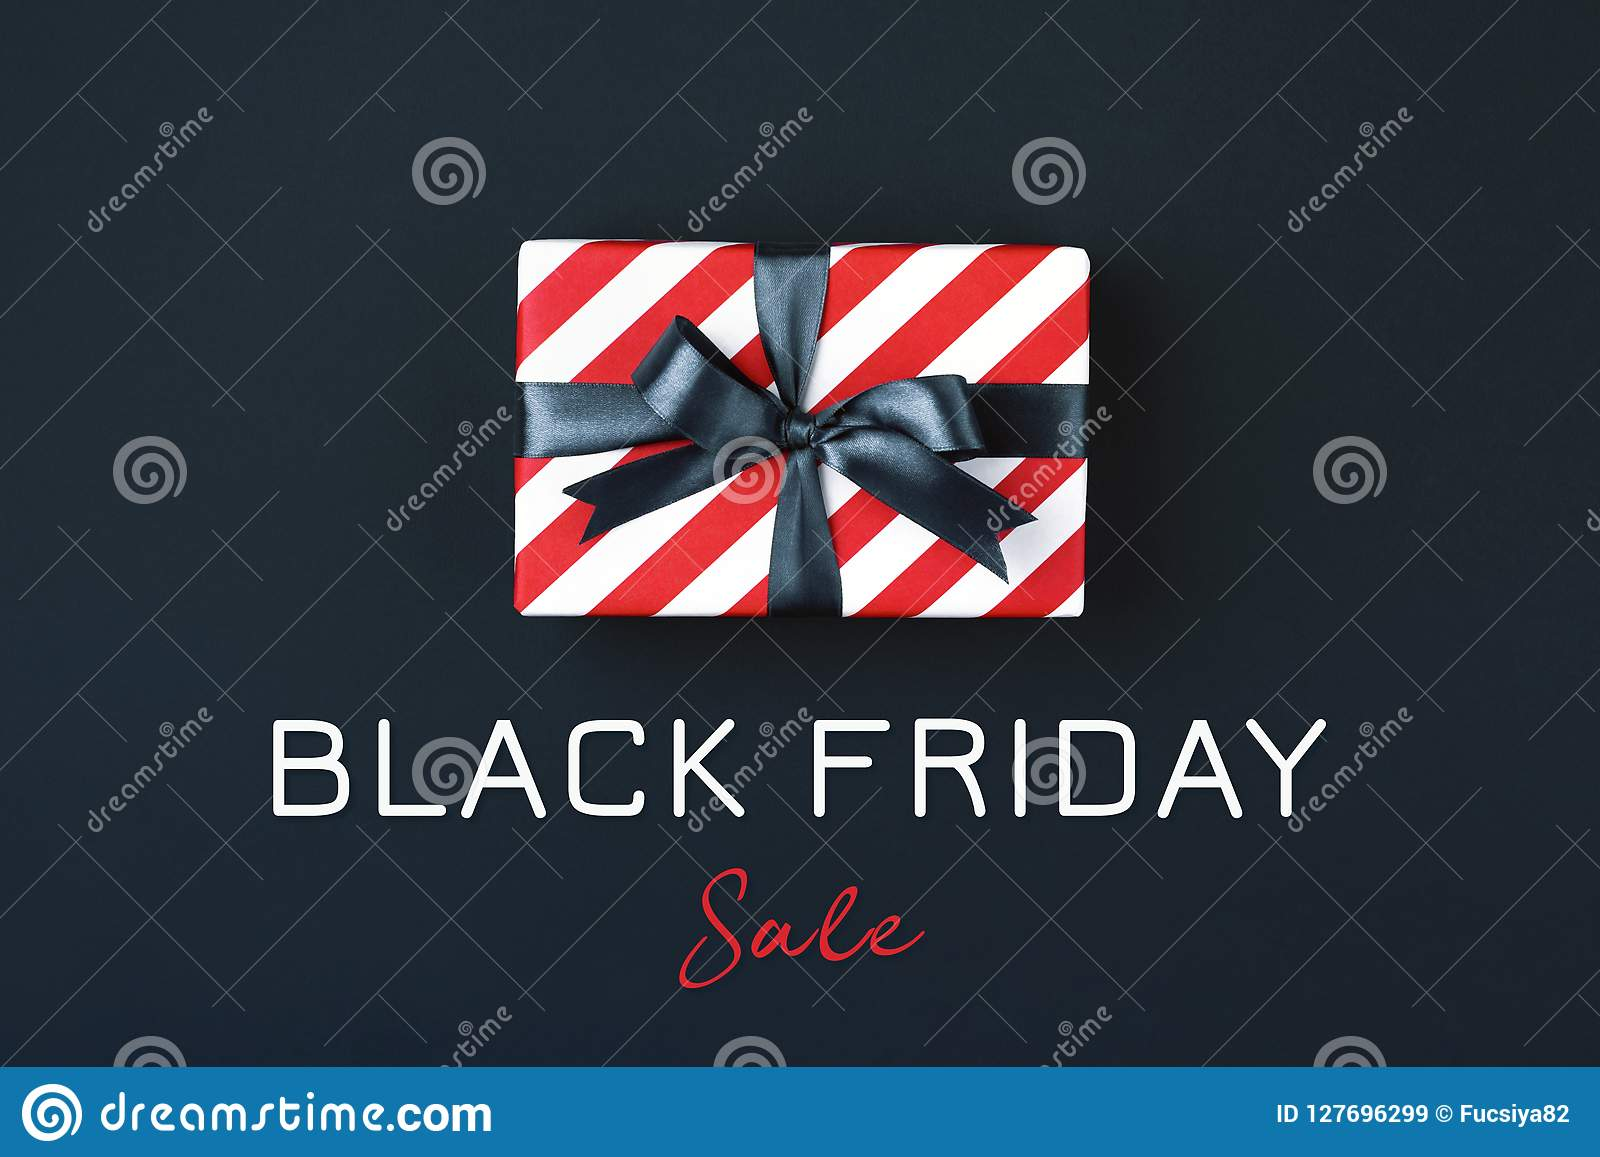 Black Friday-Geschenkbox